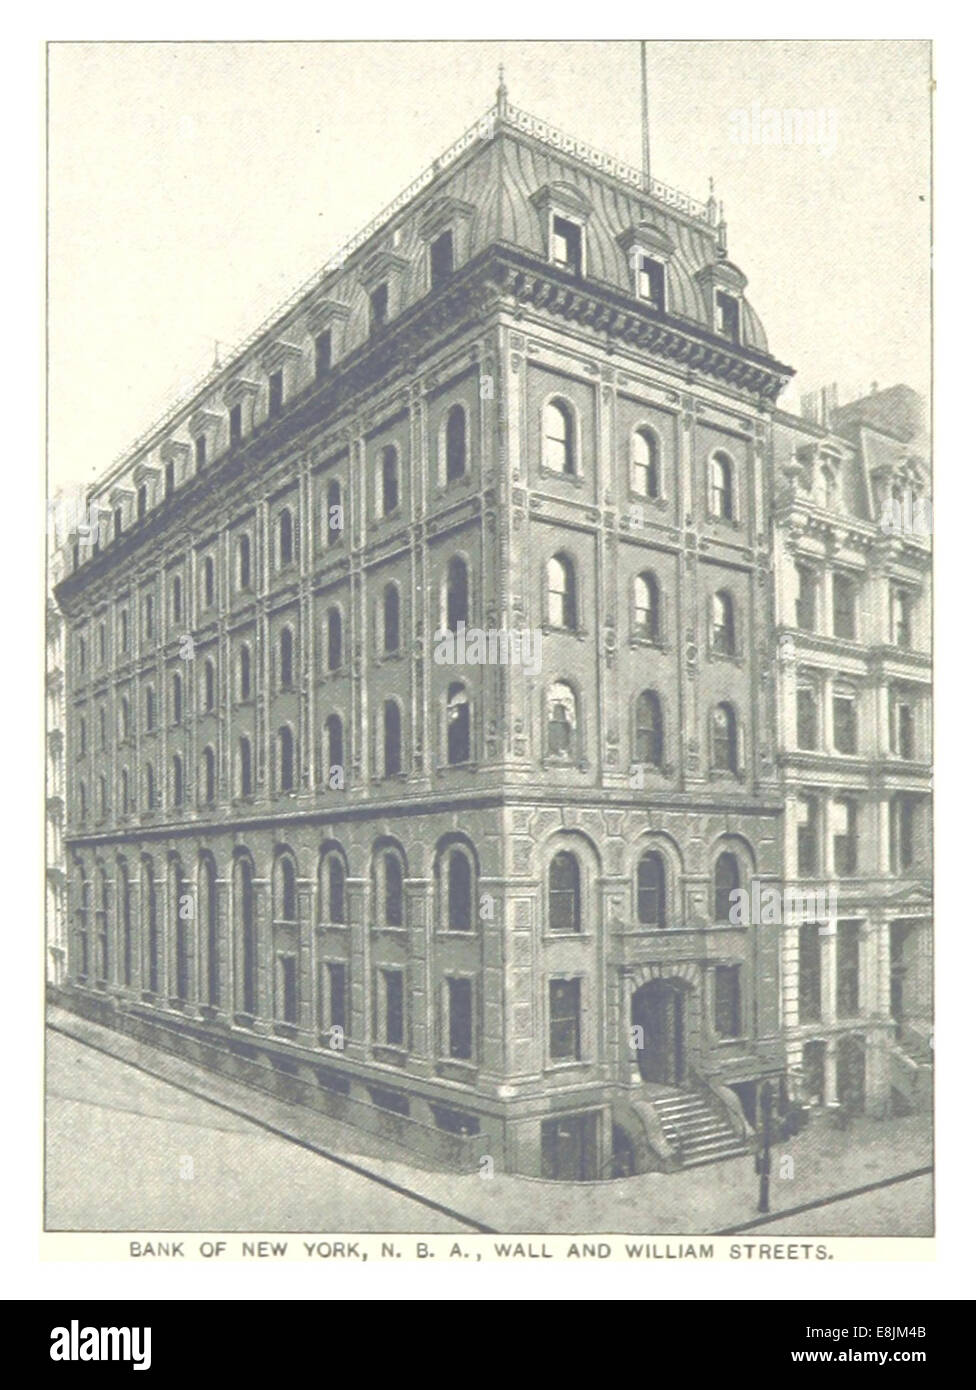 (King1893NYC) pg710 BANK OF NEW YORK, WALL AND WILLIAM STREETS - Stock Image